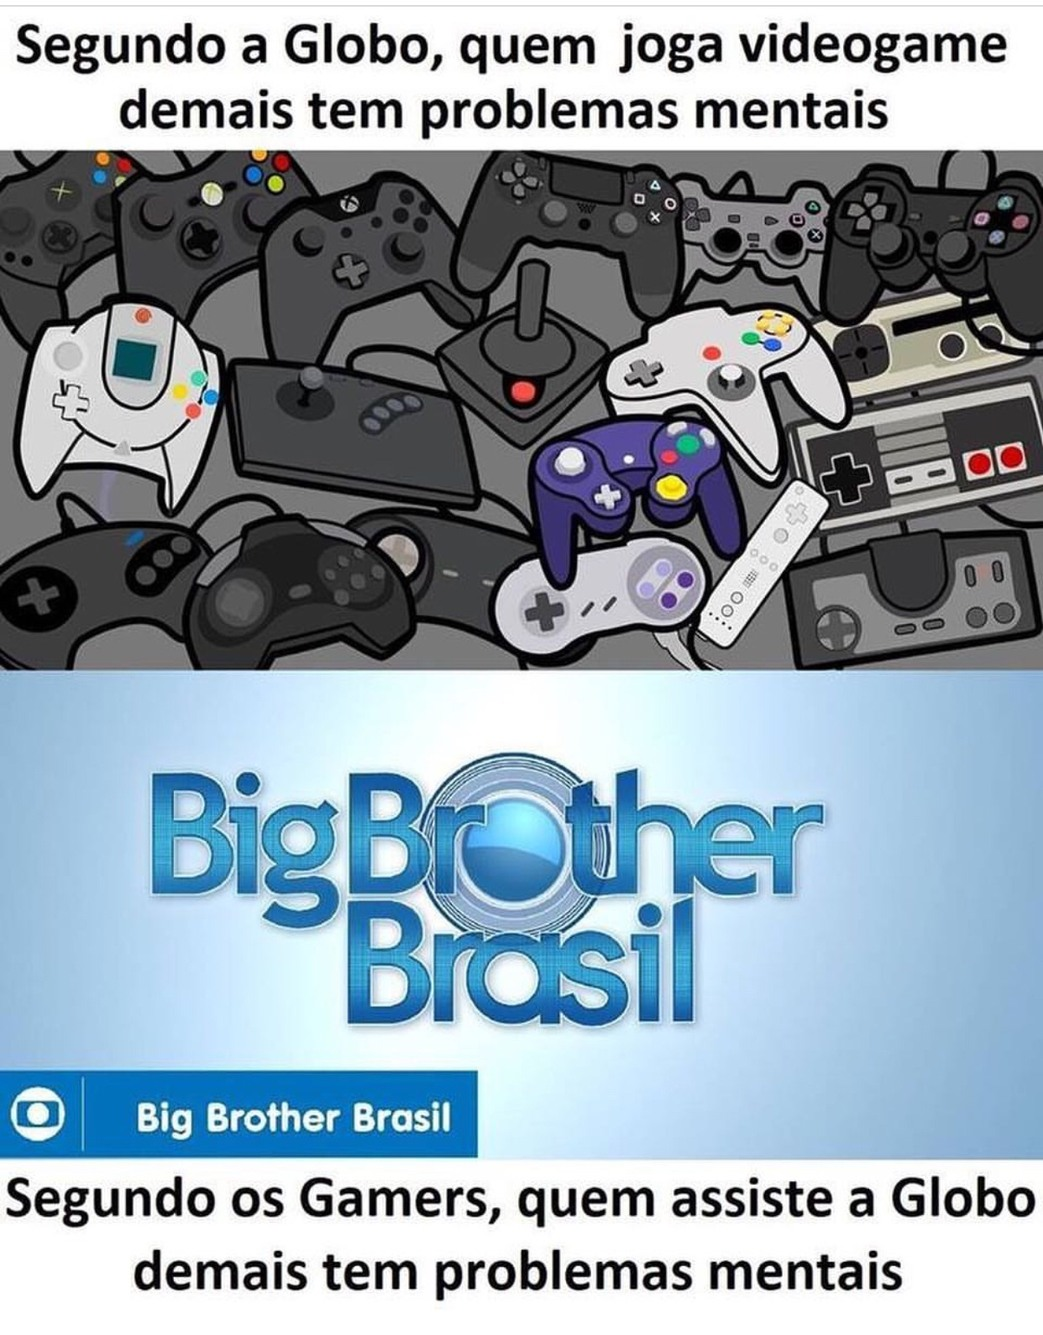 big bosta birosca - meme